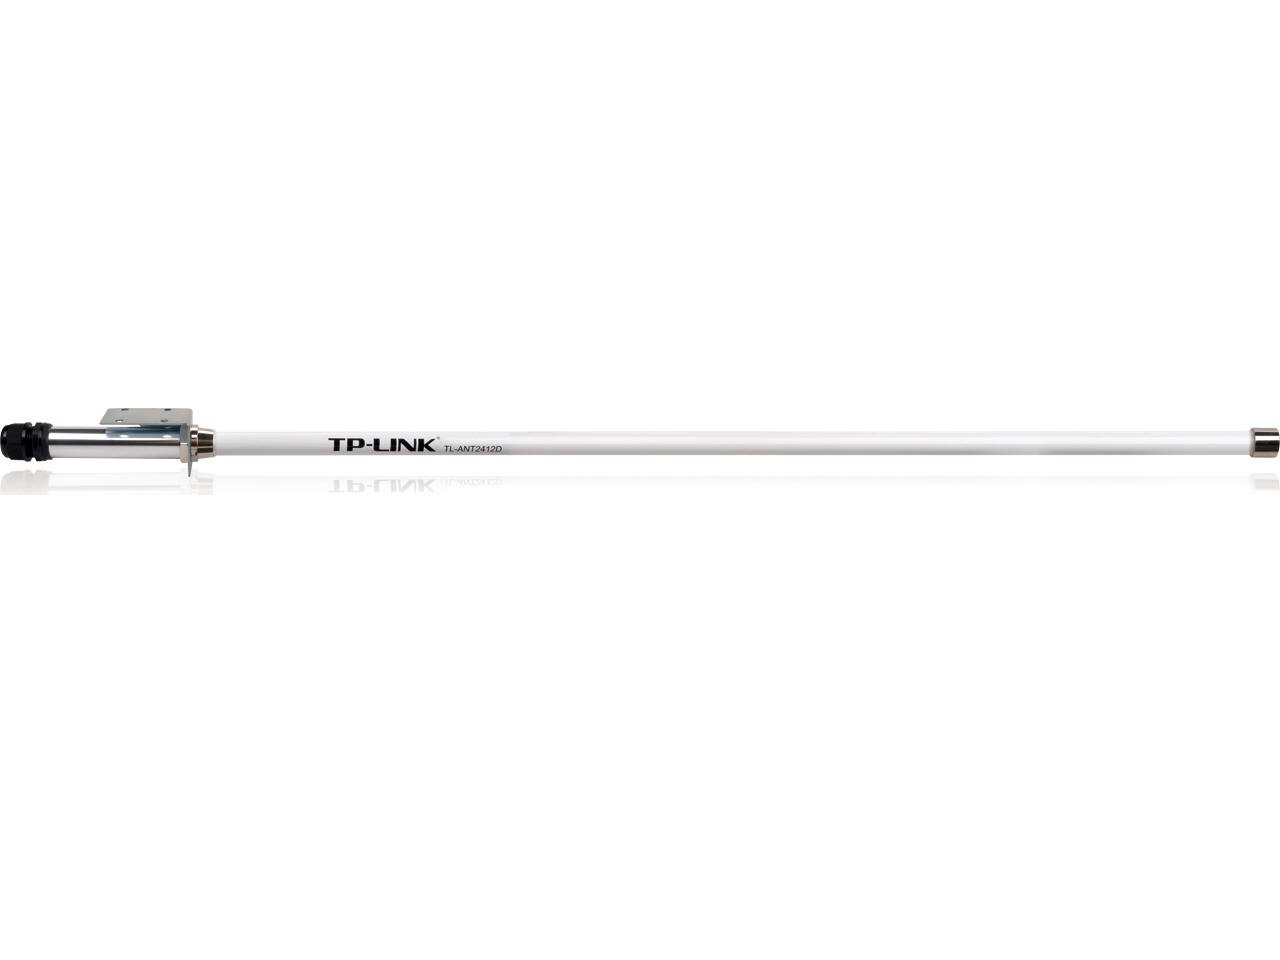 TP-Link 2.4GHz 12dBi Outdoor Omni-directional Antenna, N Female (TL-ANT2412D)